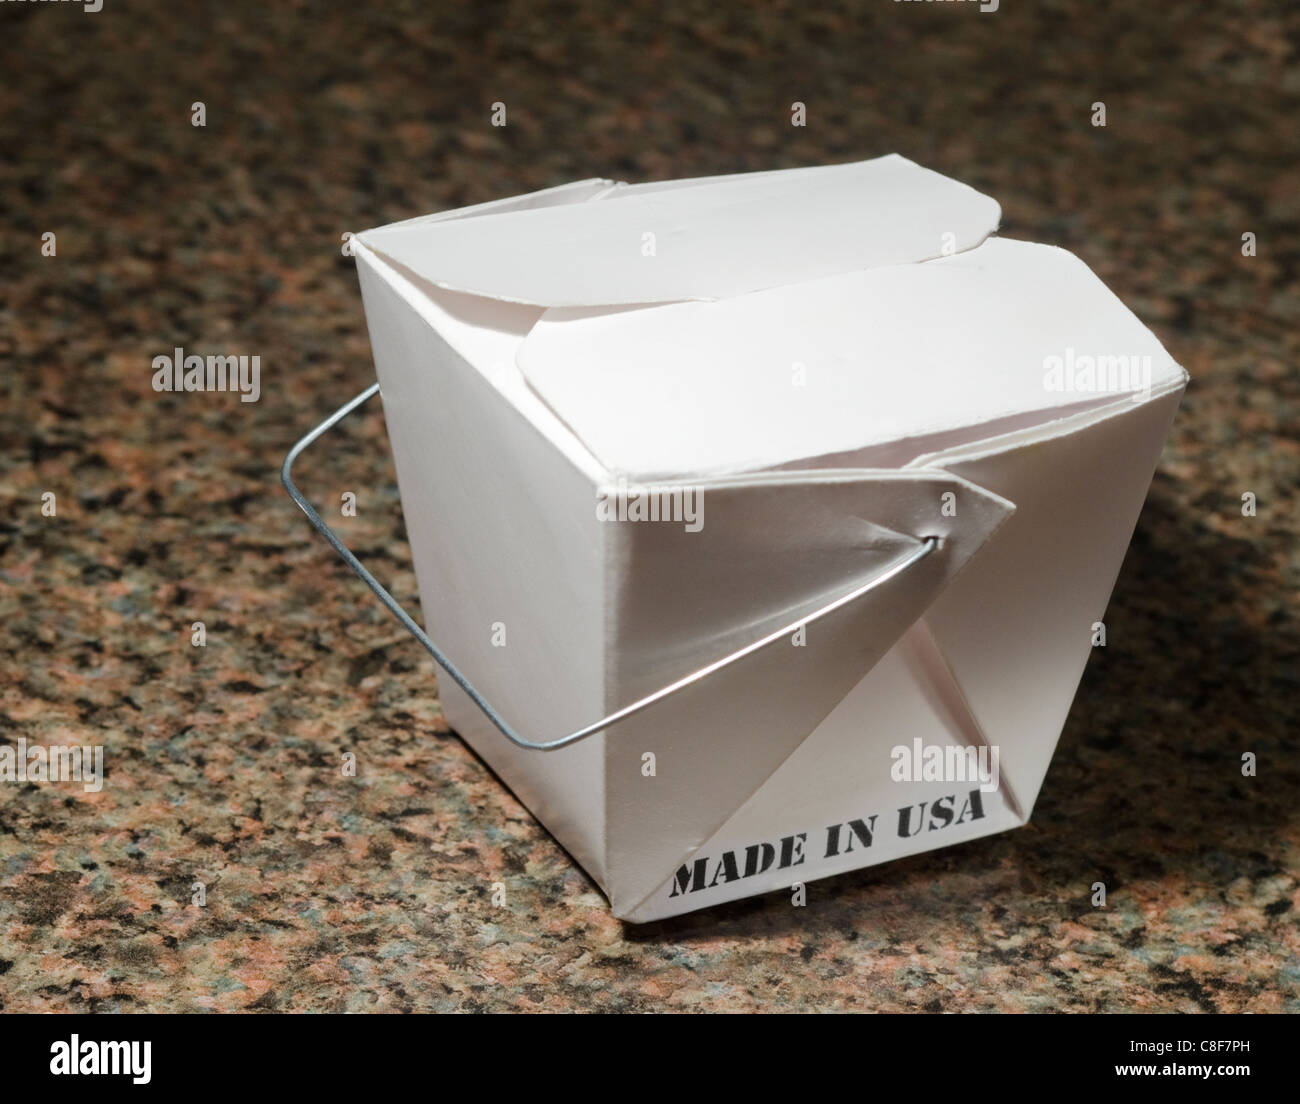 Chinese food container with Made in USA label - Stock Image